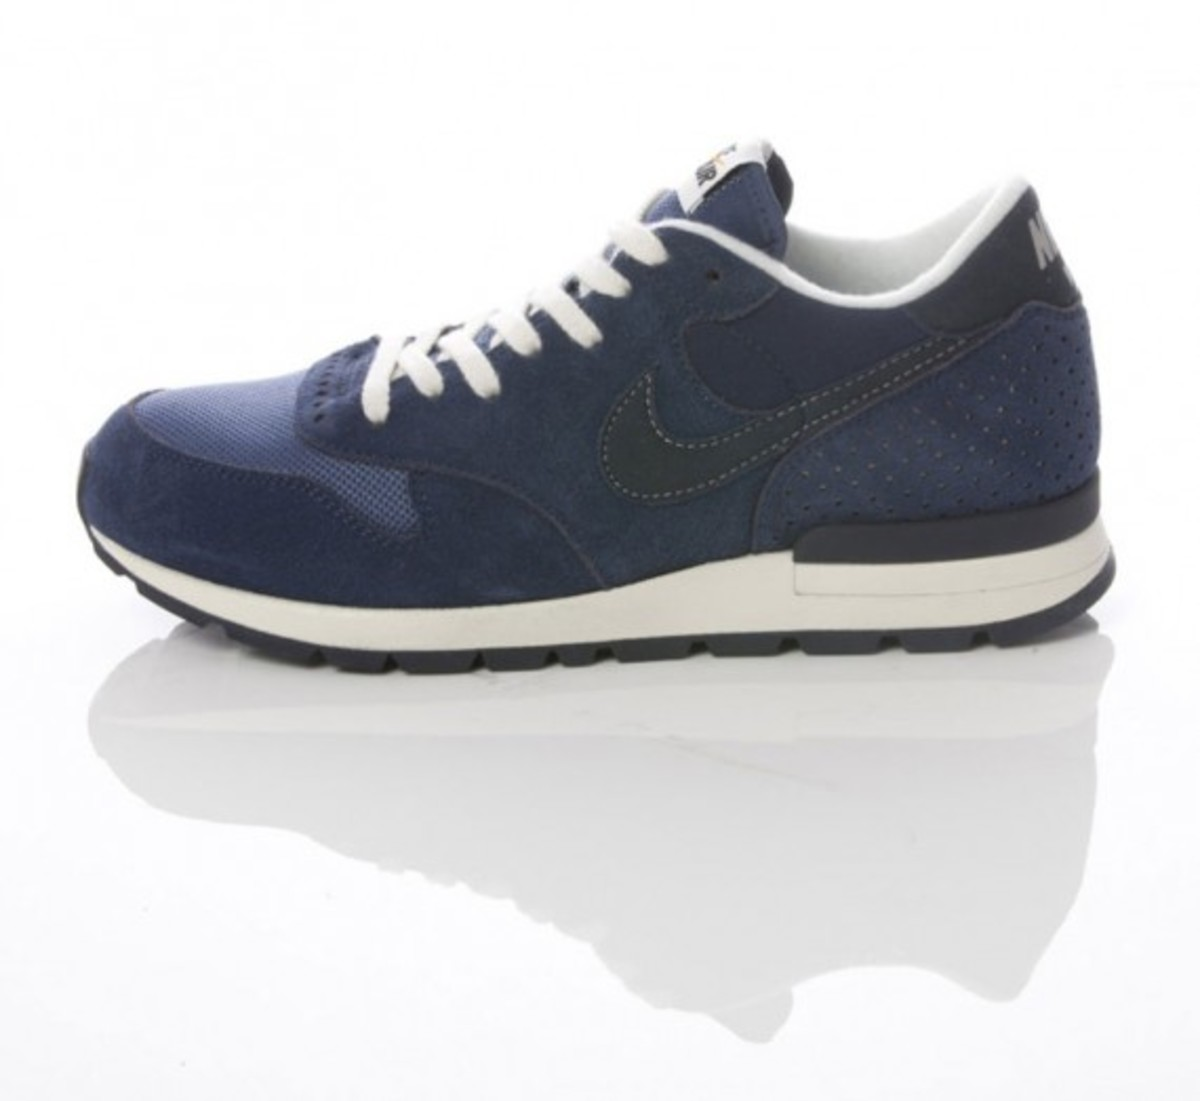 nike-sportswear-grey-navy-collection-10